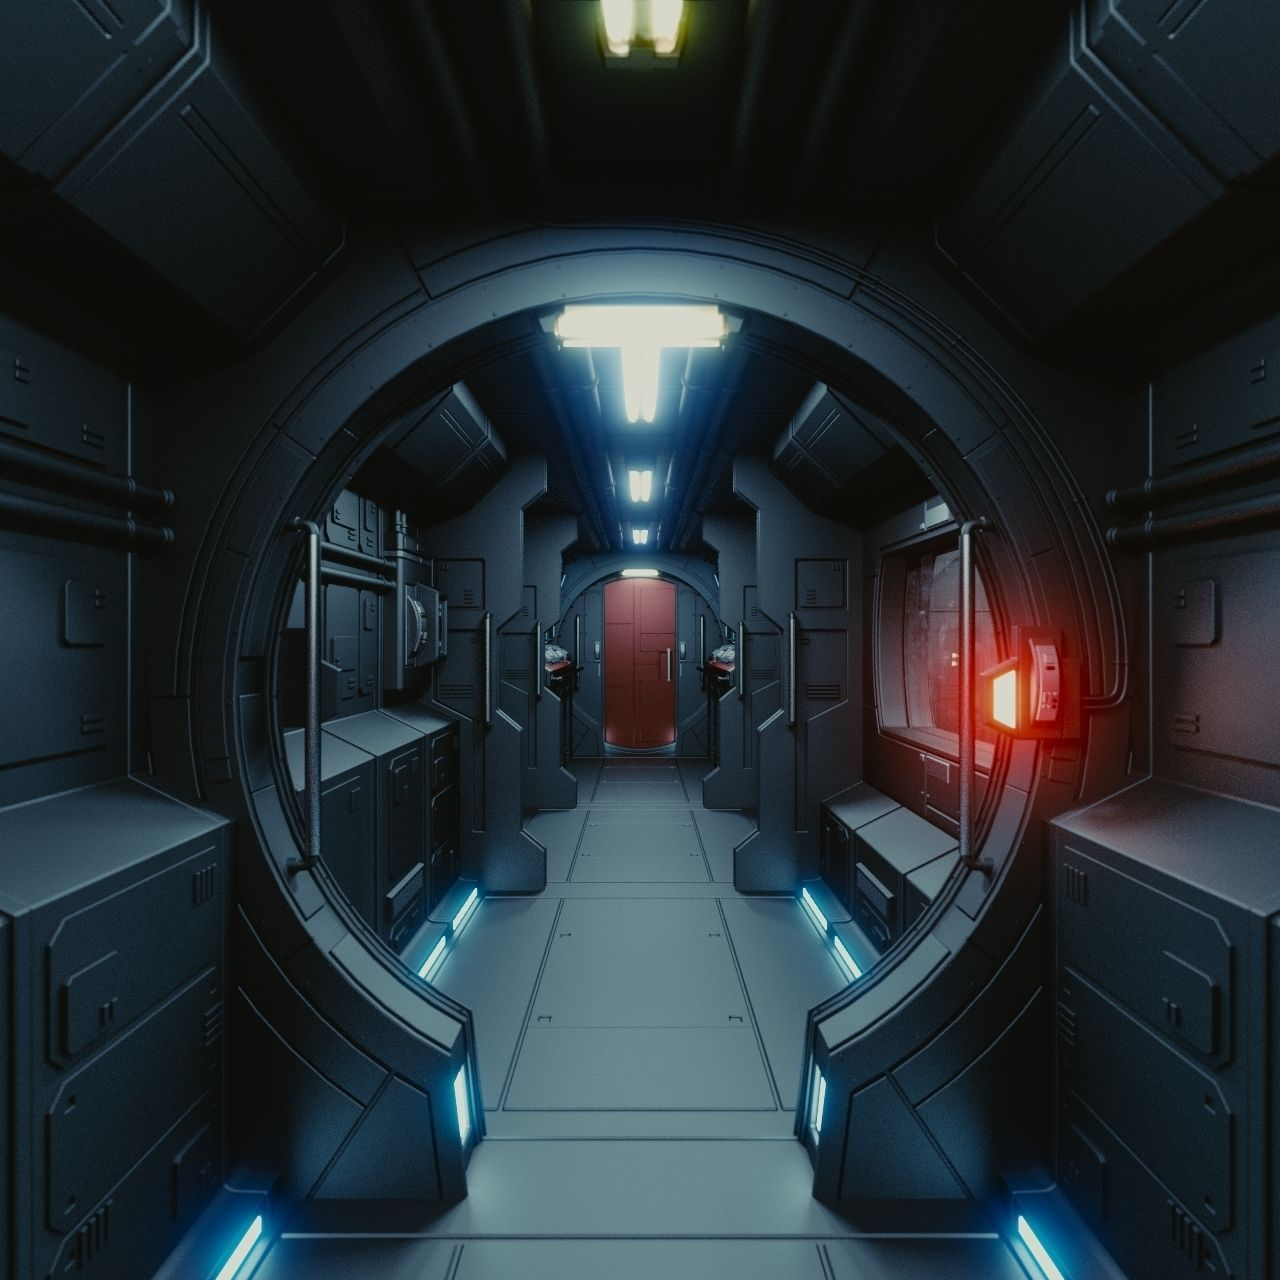 Spaceship interior c hd 3d model obj fbx blend for Sci fi decor